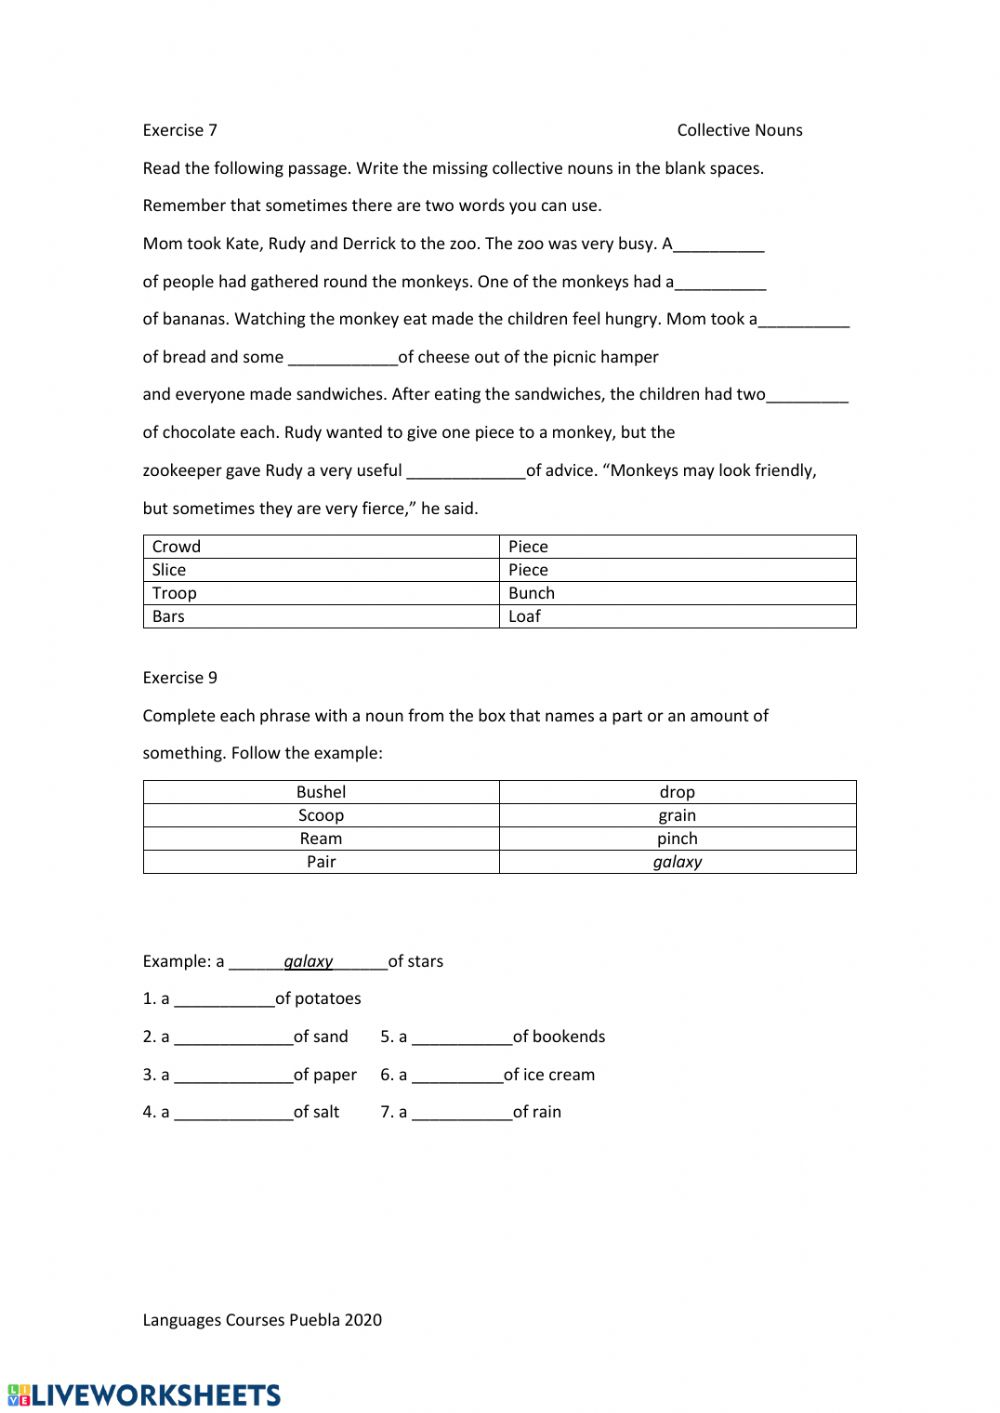 medium resolution of Collective Nouns worksheet